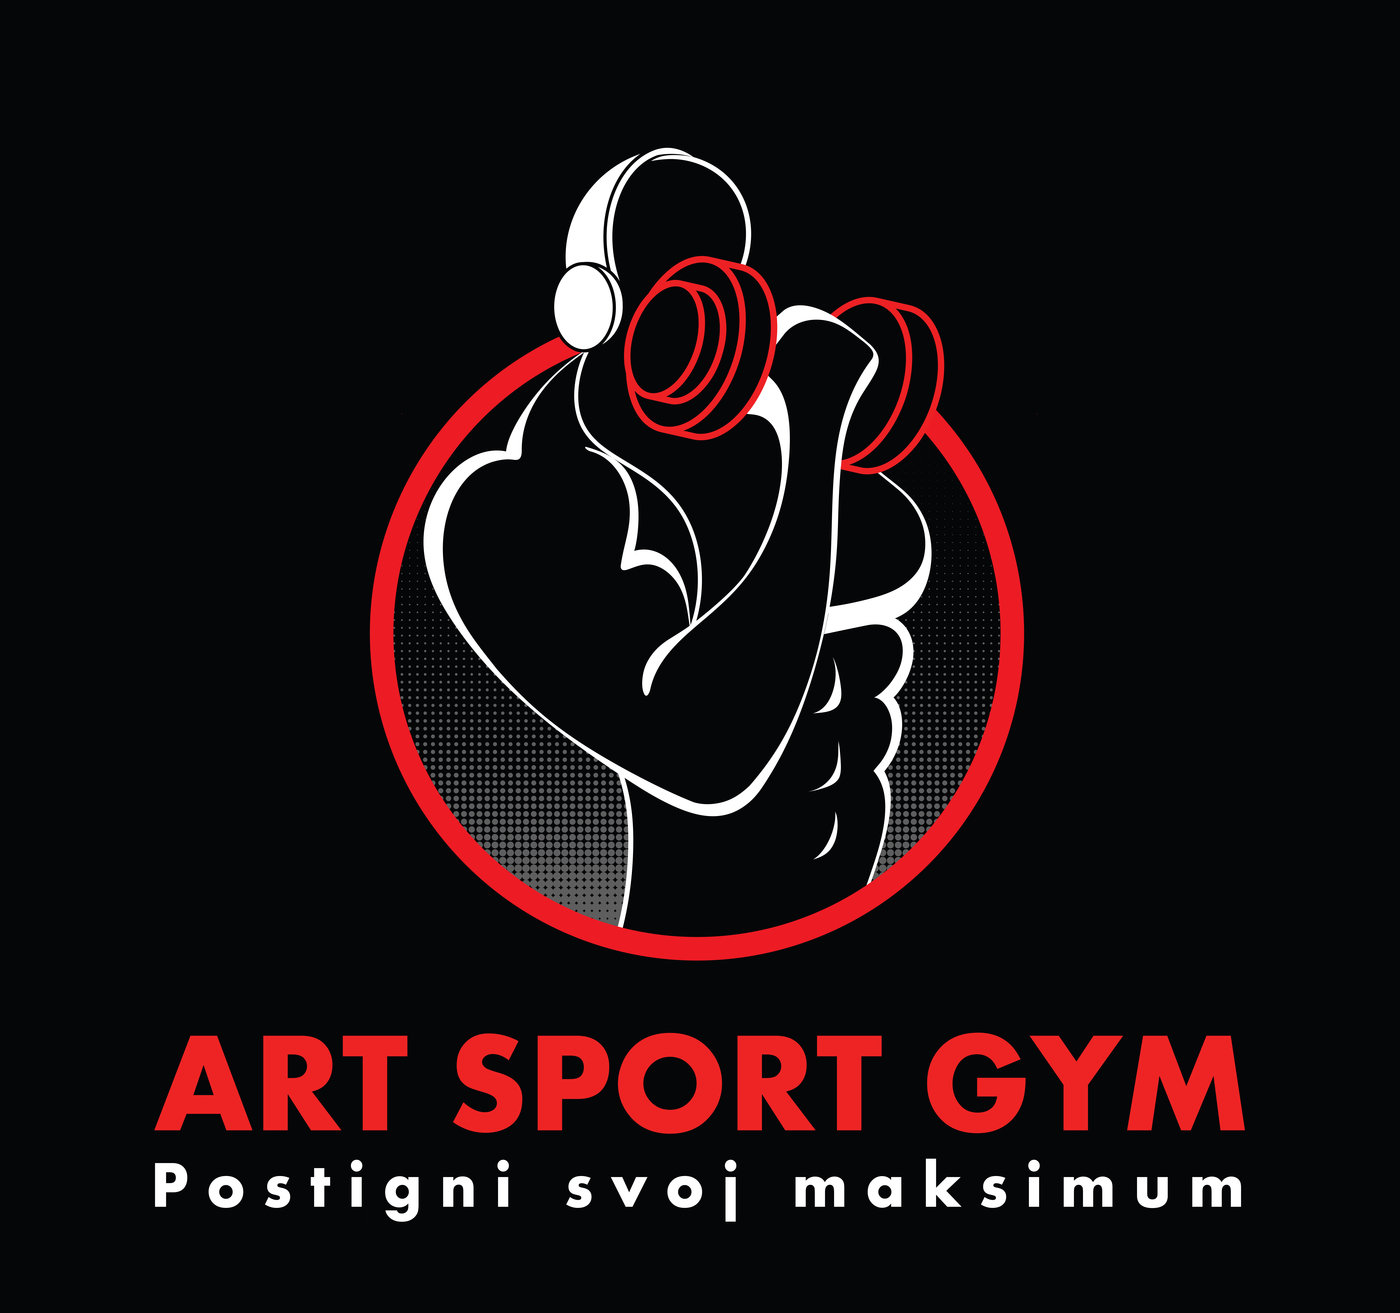 GYM LOGO, VISUAL IDENTITY by Kosan Stanojevic at Coroflot.com for Gym Logo Pictures  173lyp